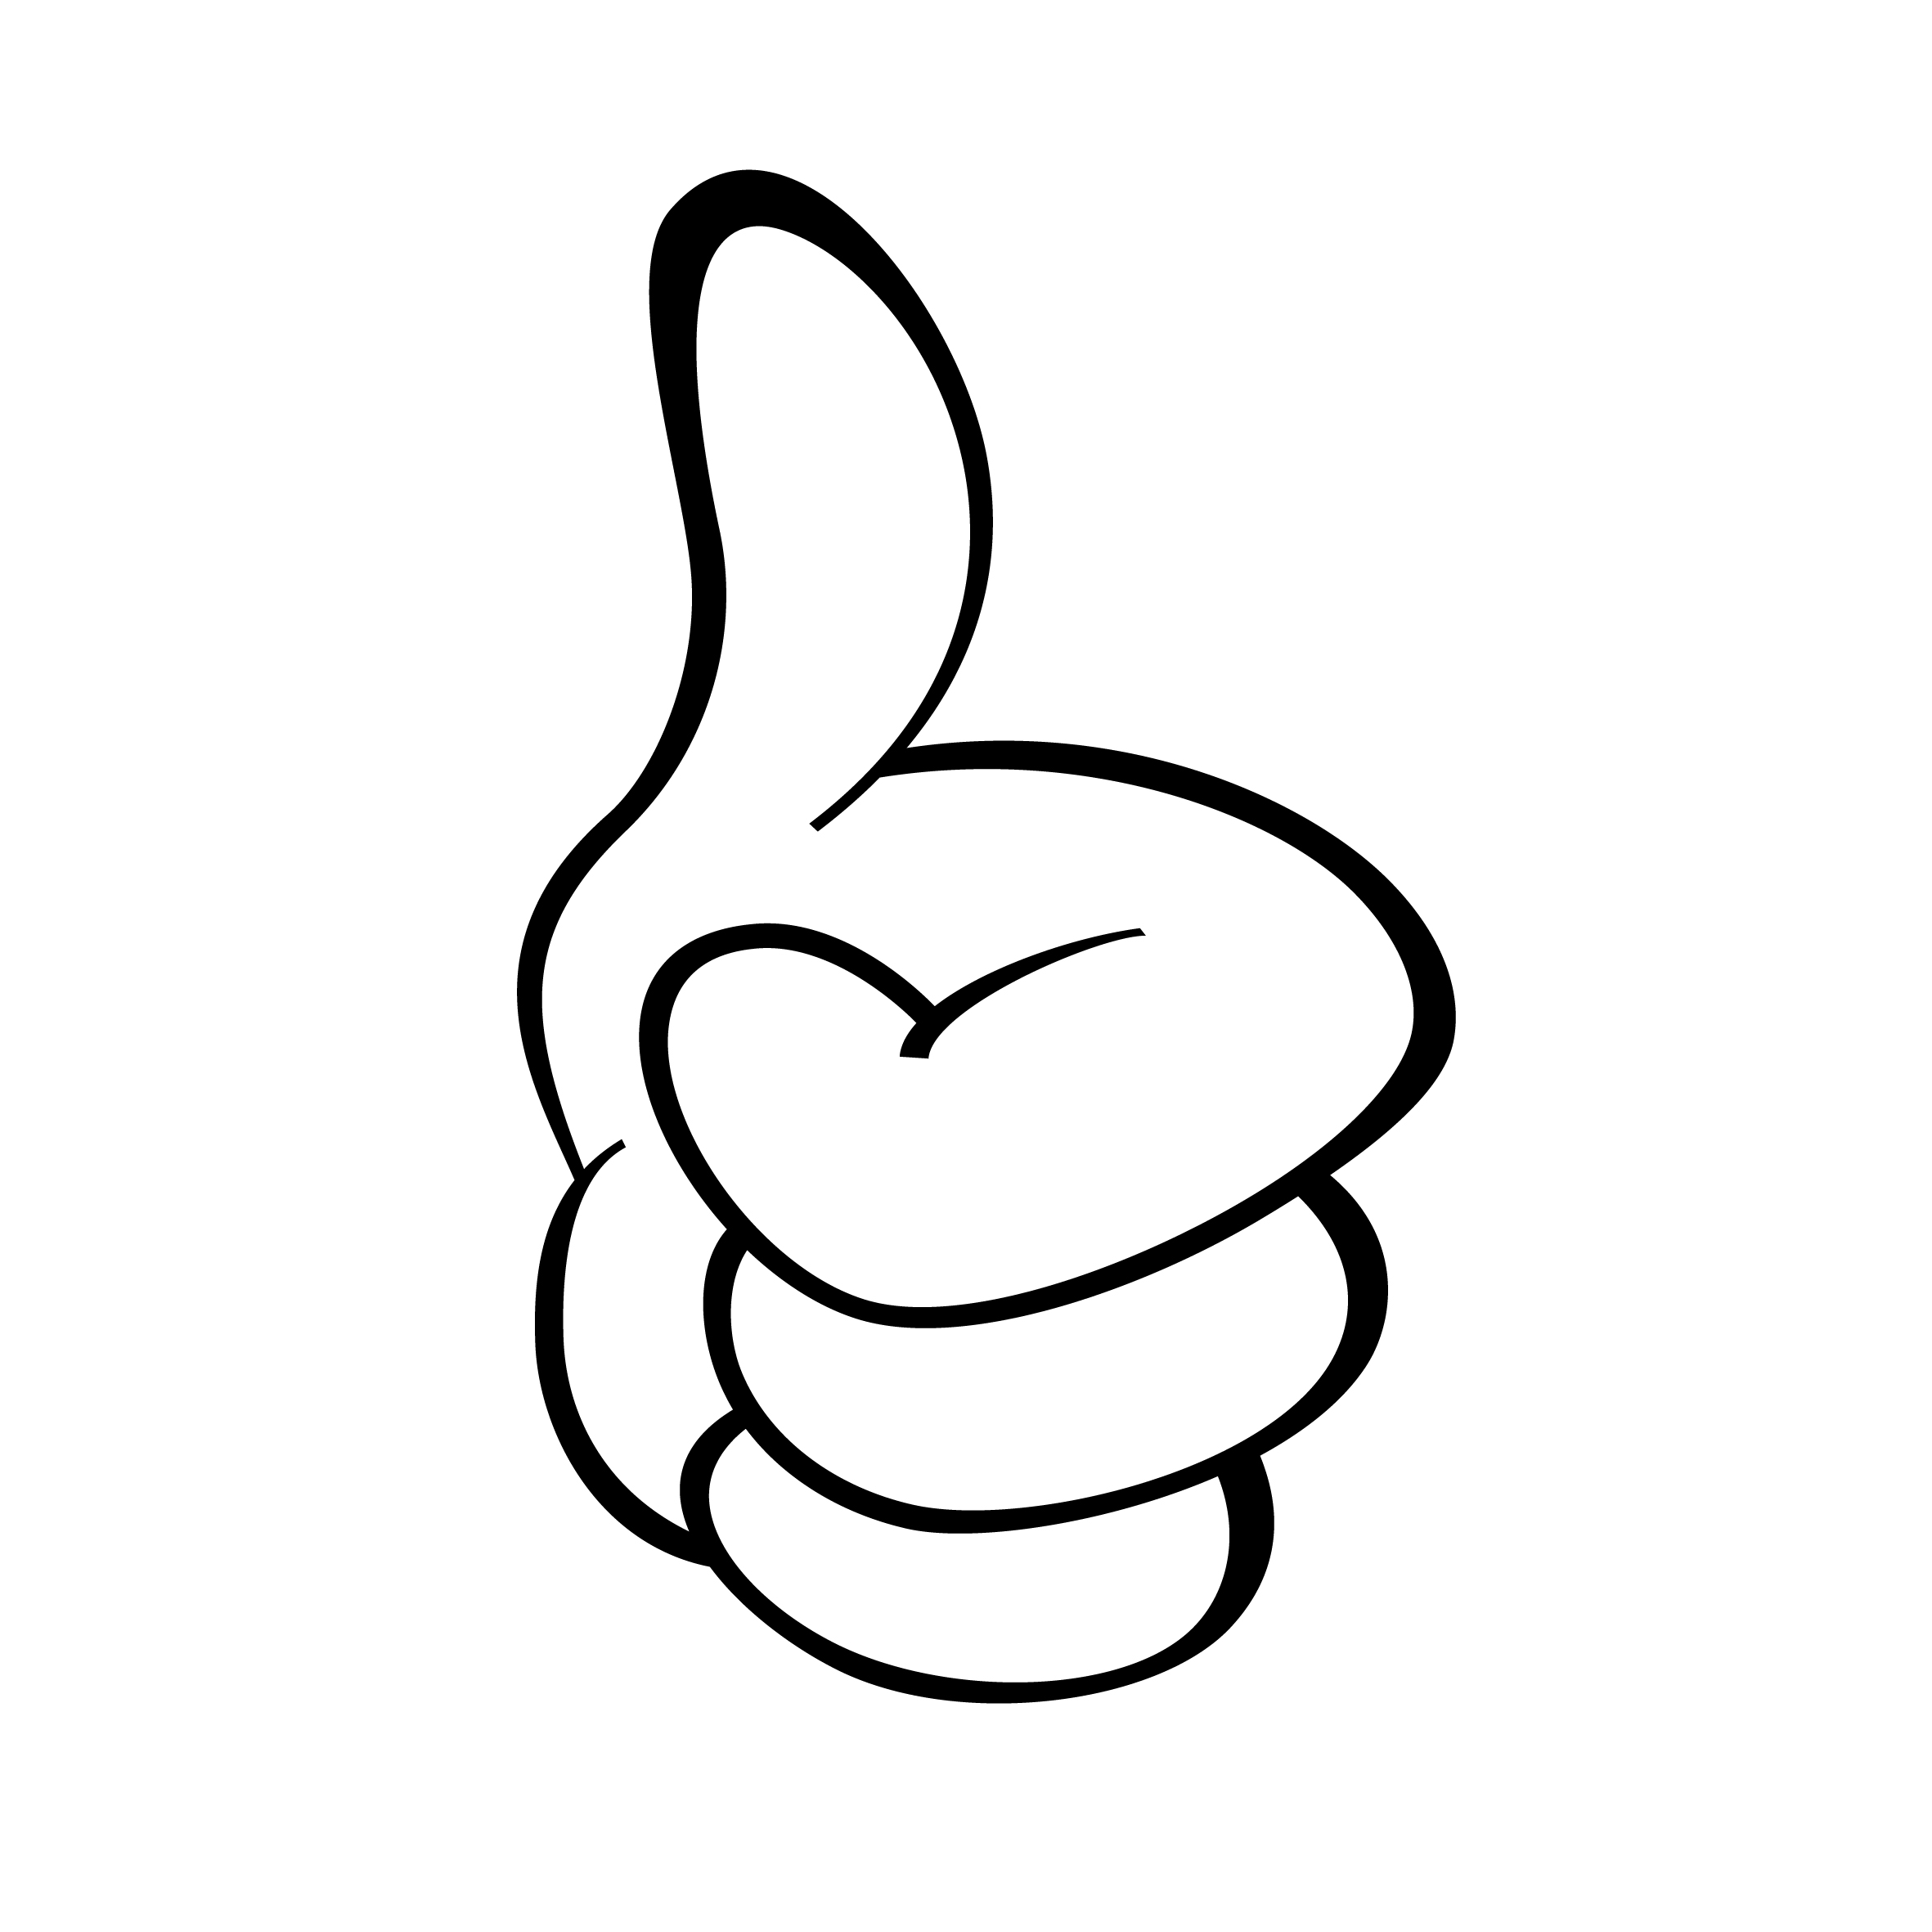 Free Thumbs Up Graphic Download Free Clip Art Free Clip